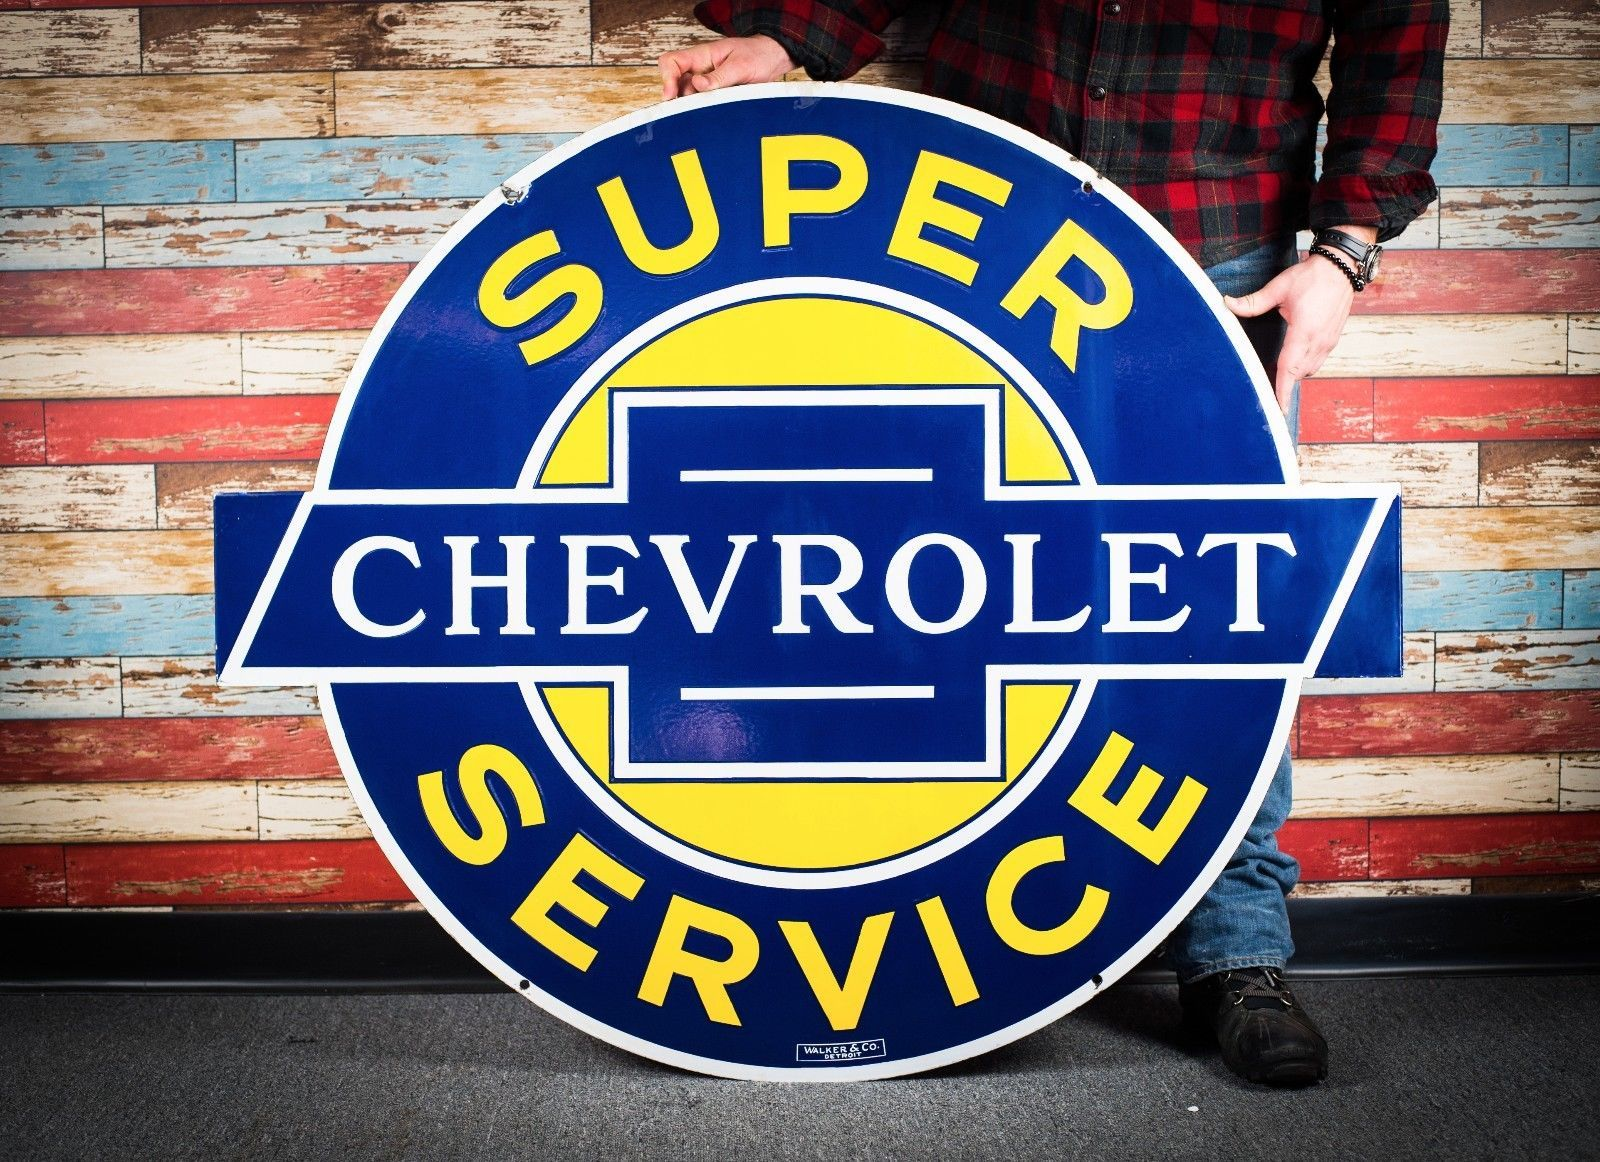 Details About Original Chevrolet Service Porcelain Gas Oil